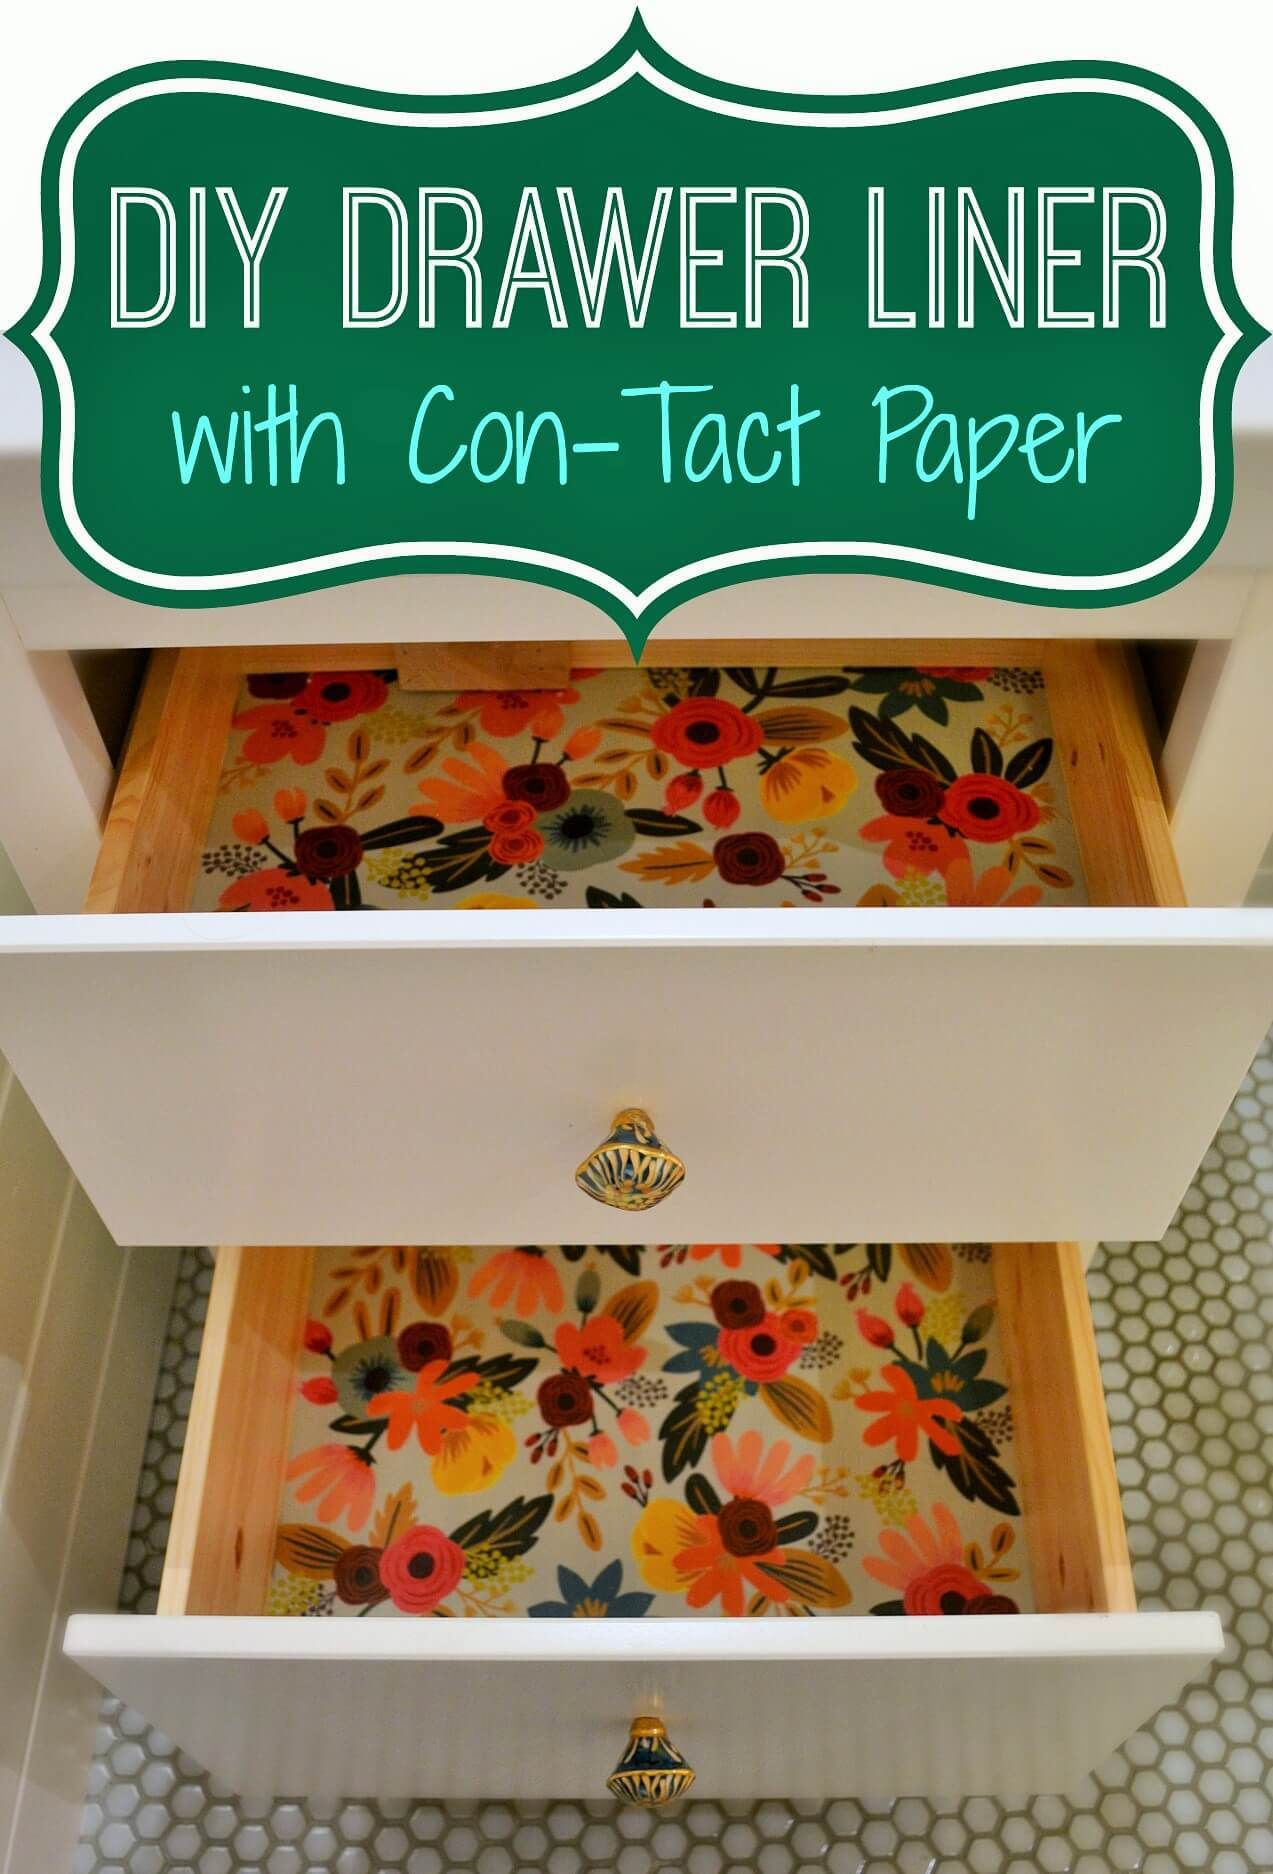 DIY drawer liner with contact paper My next apartment